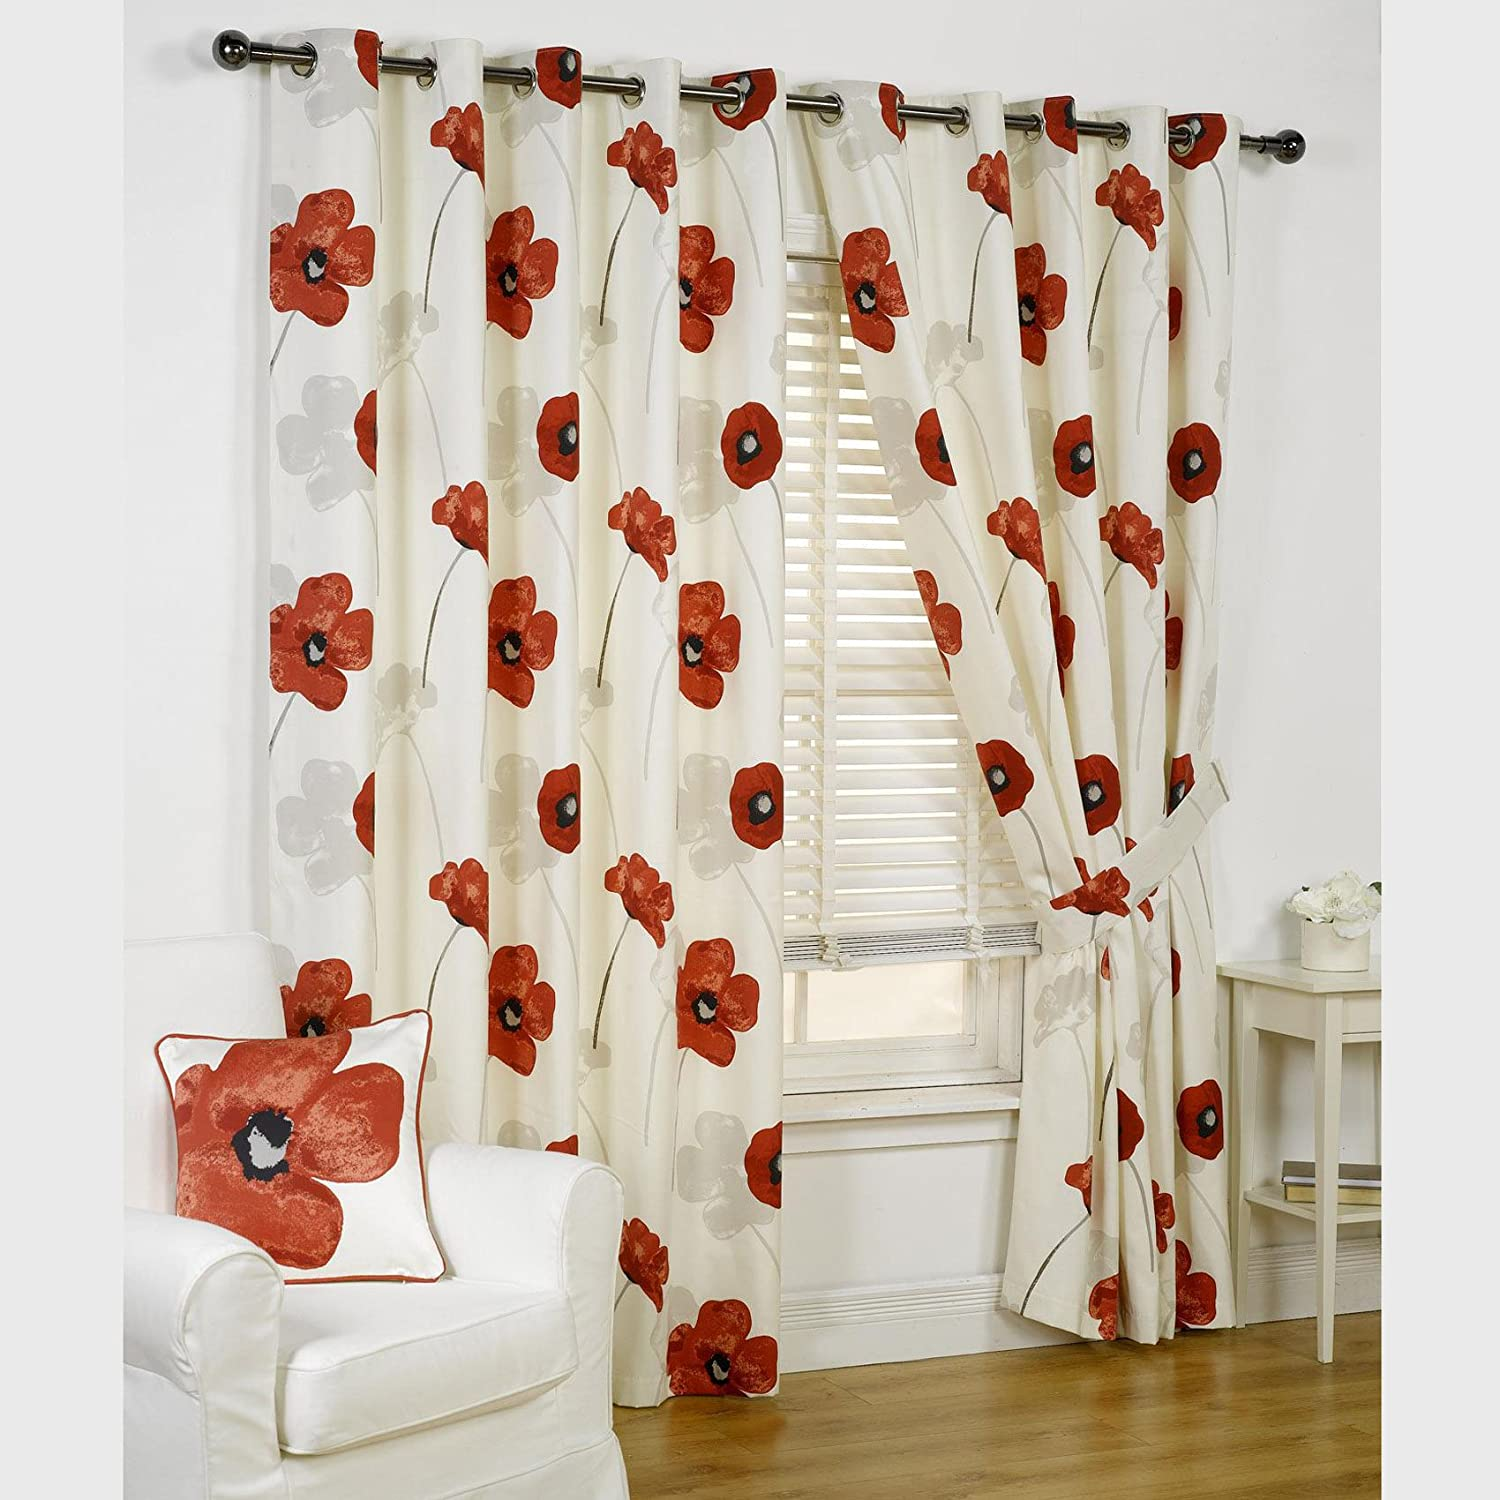 Opium Poppy Floral Design Fully Lined Readymade Eyelet Curtains